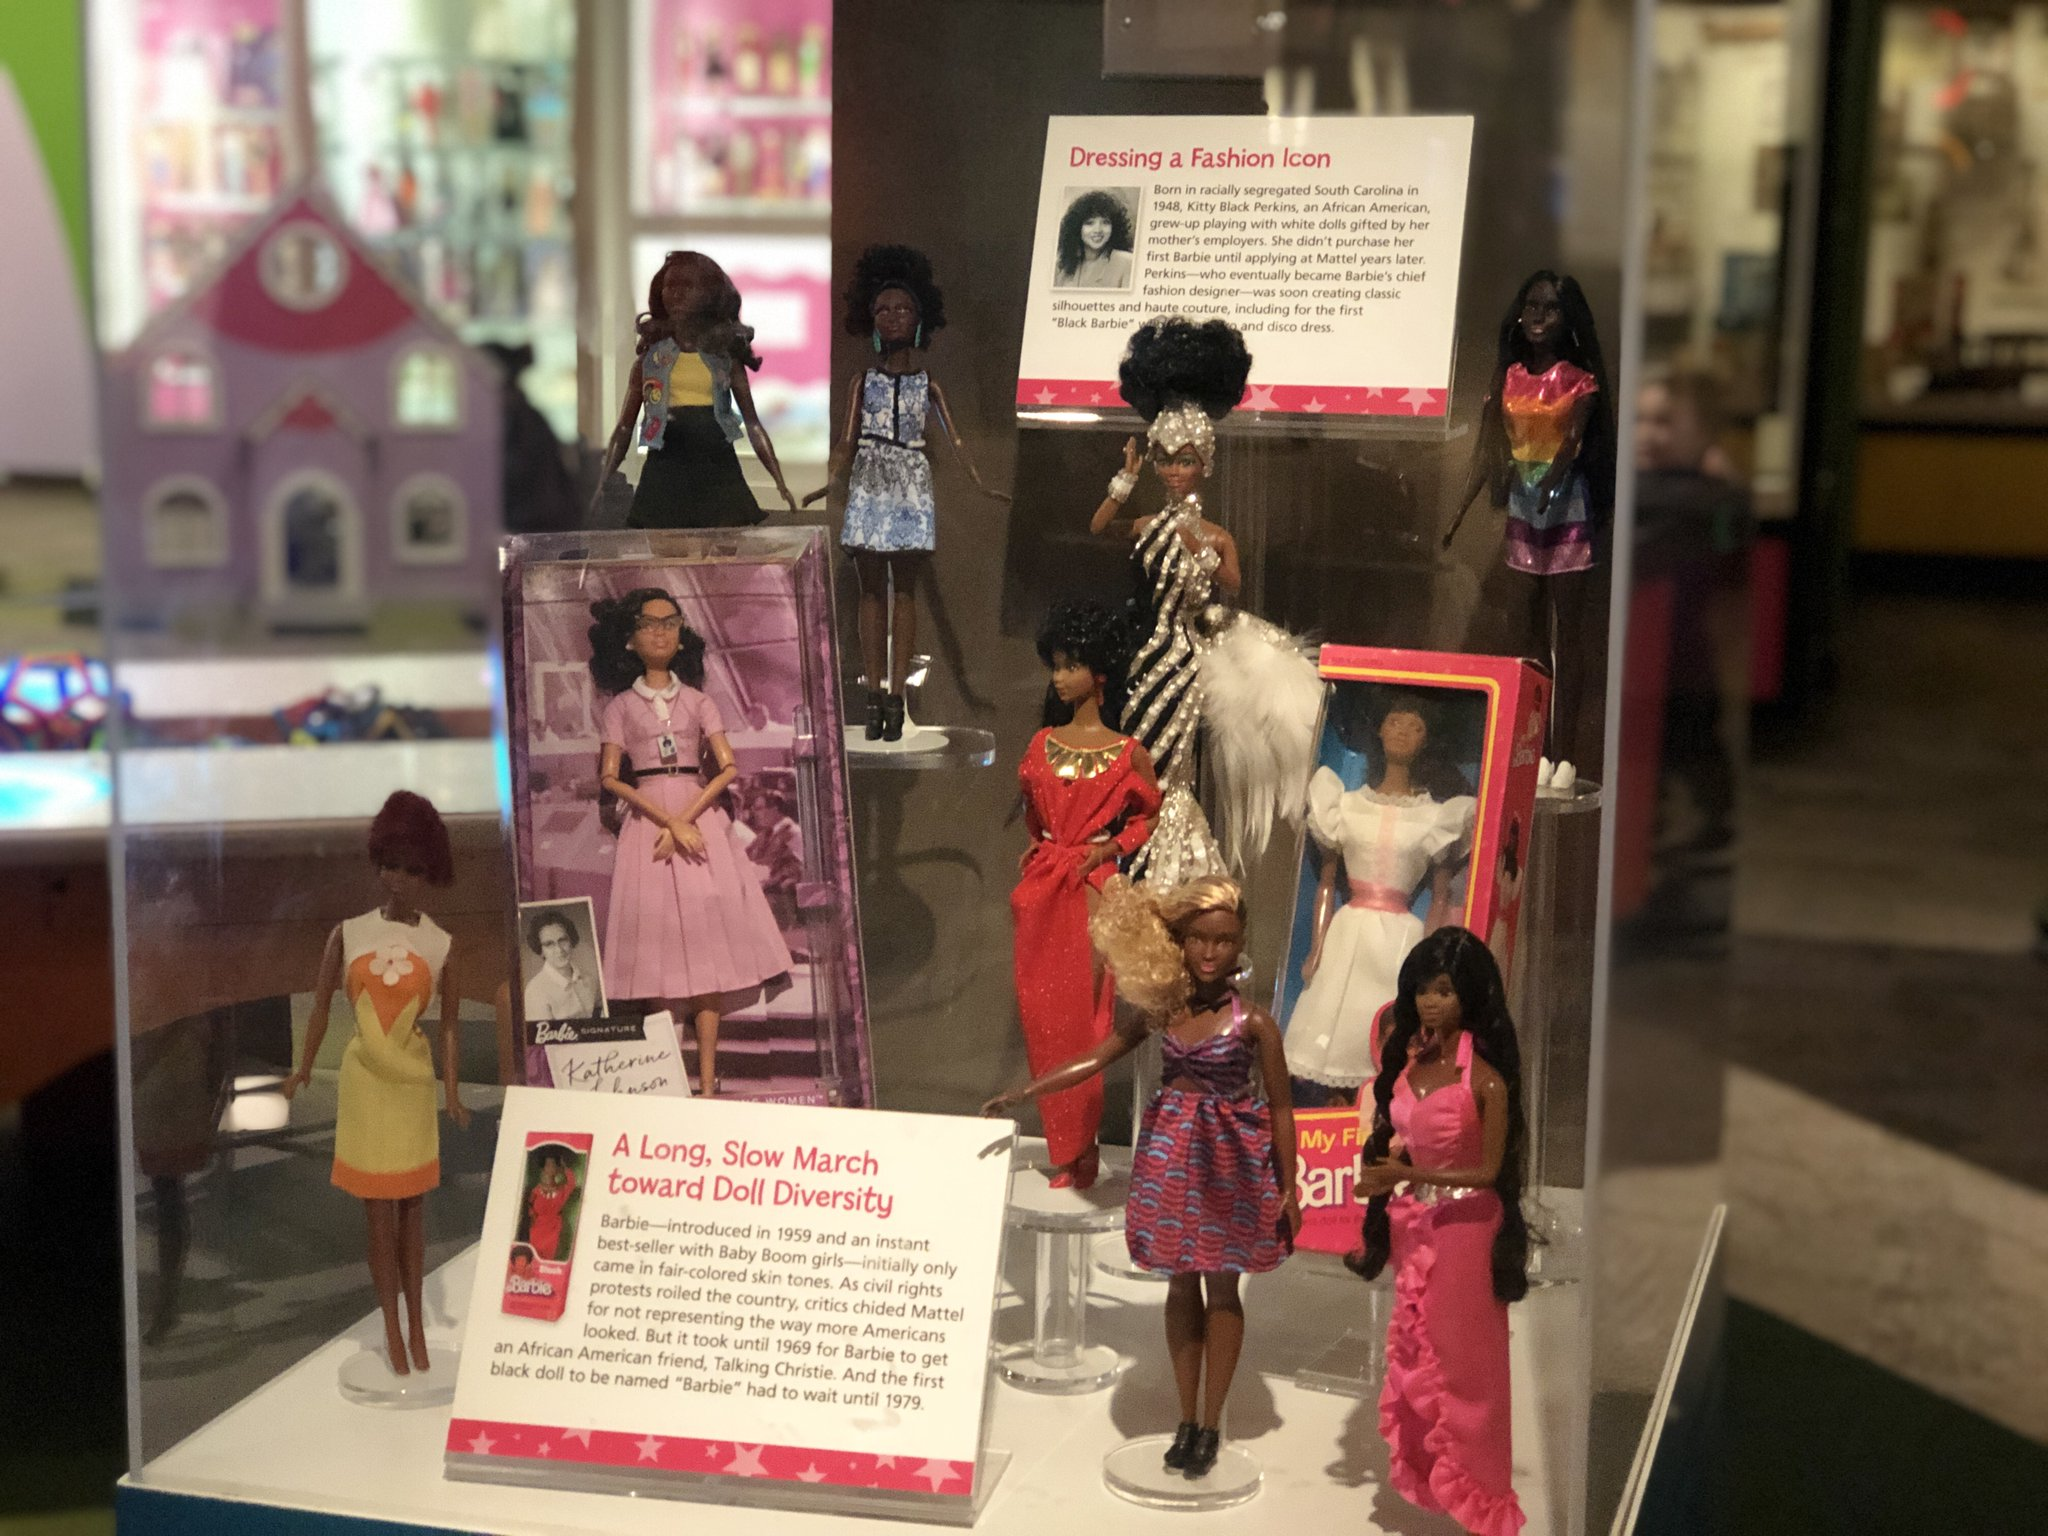 The Strong Museum On Twitter Kitty Black Perkins Served As Chief Designer Of Fashions And Doll Concepts For Mattel S Barbie Line And Worked On Some Of The Company S Most Iconic Dolls Learn